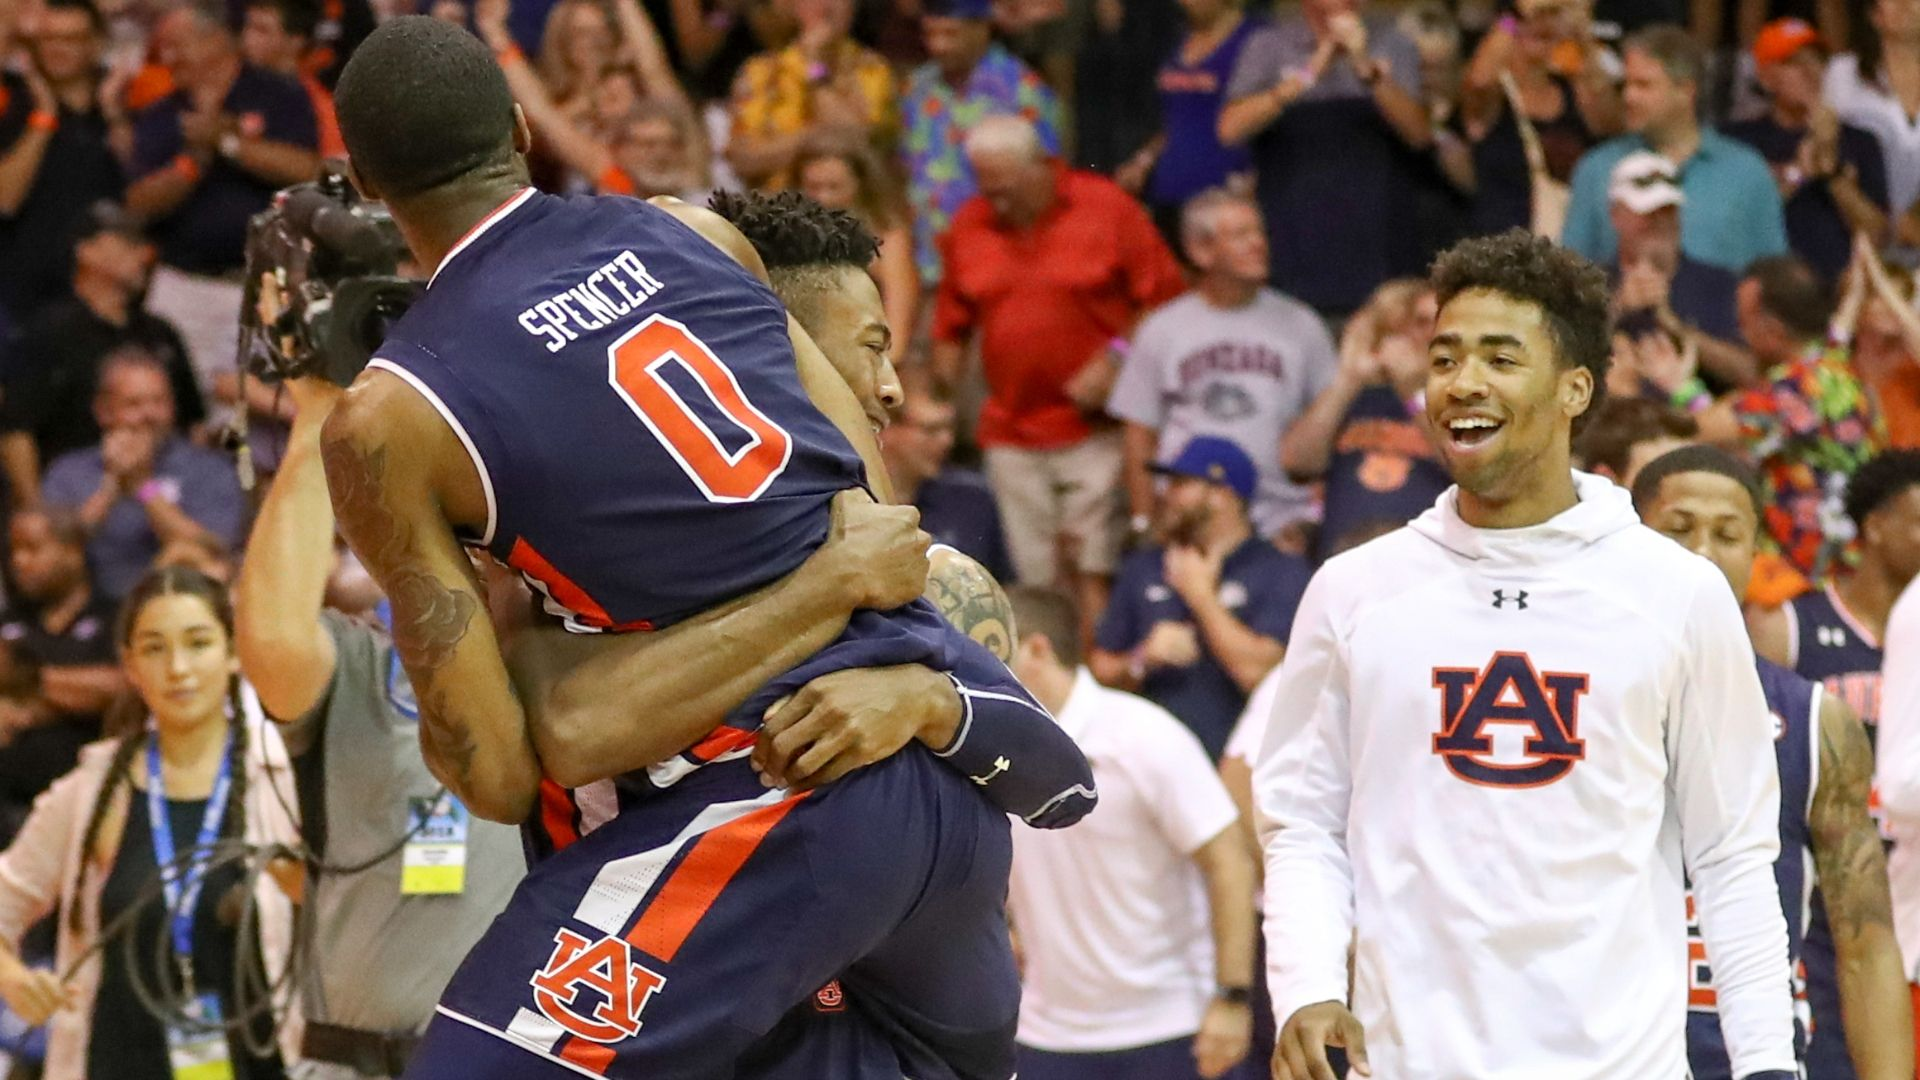 Auburn wins in OT with help of Harper's 25 points.